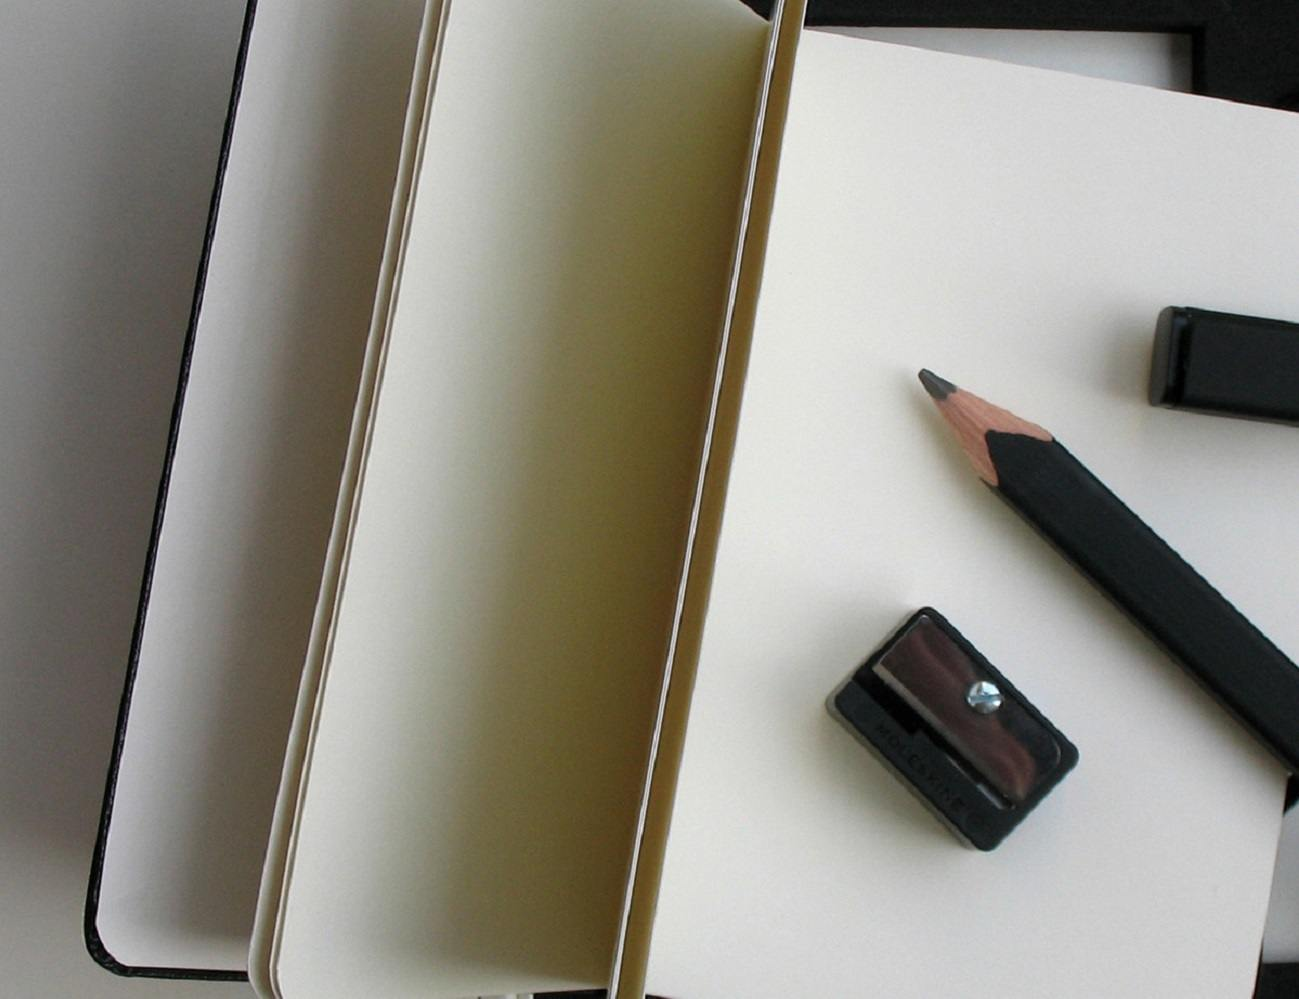 Moleskine Set of 2 Black Pencils and Sharpener